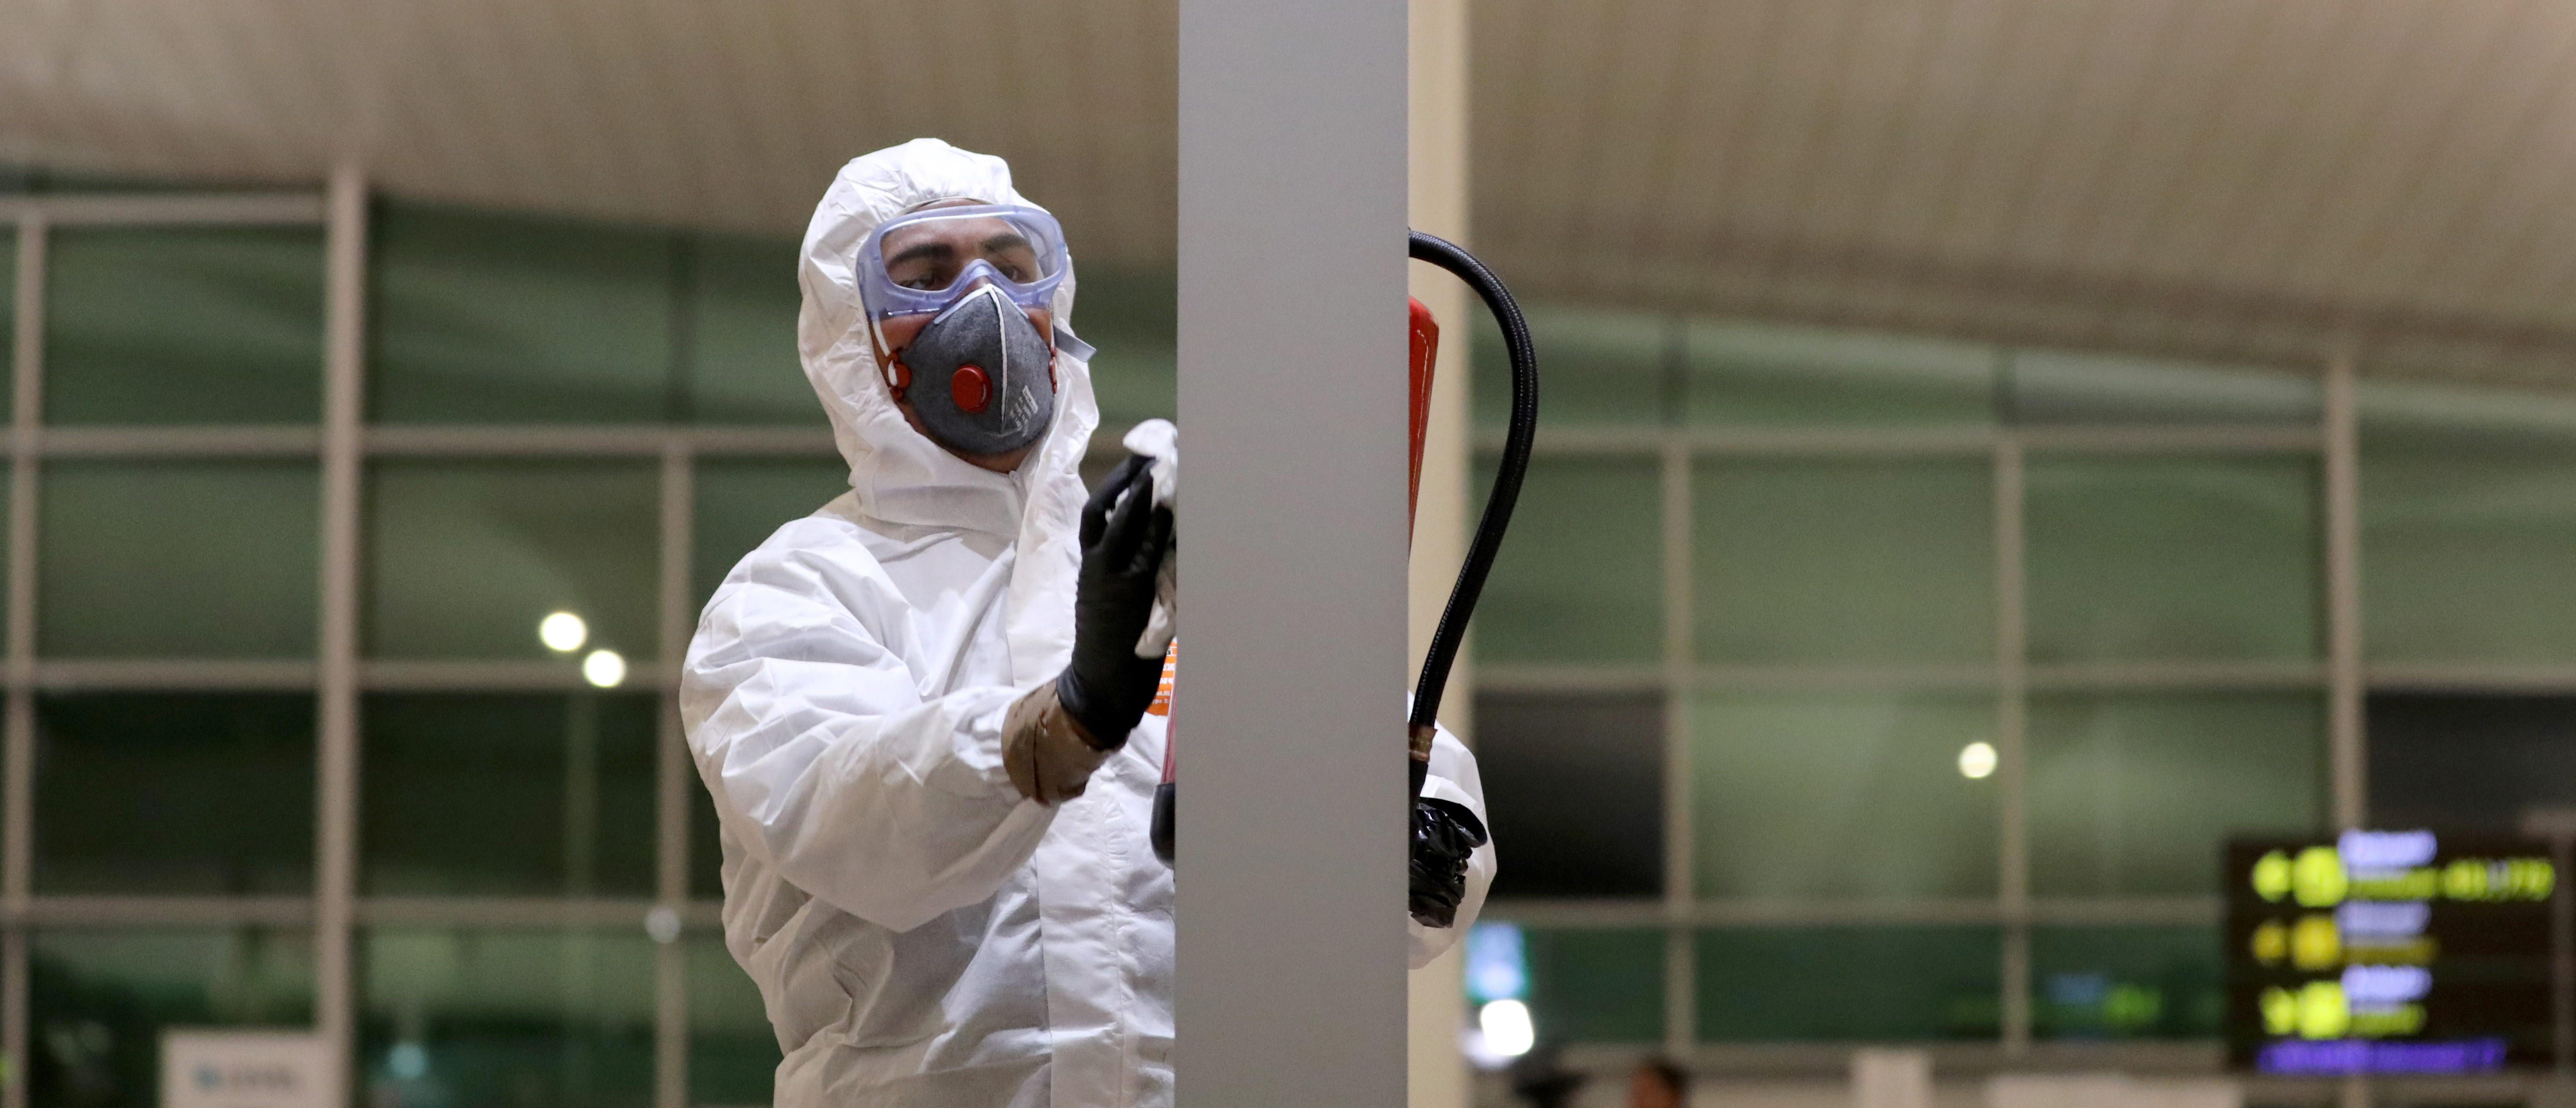 Partial lockdown as part of a 15-day state of emergency to combat the coronavirus disease (COVID-19) outbreak in Barcelona